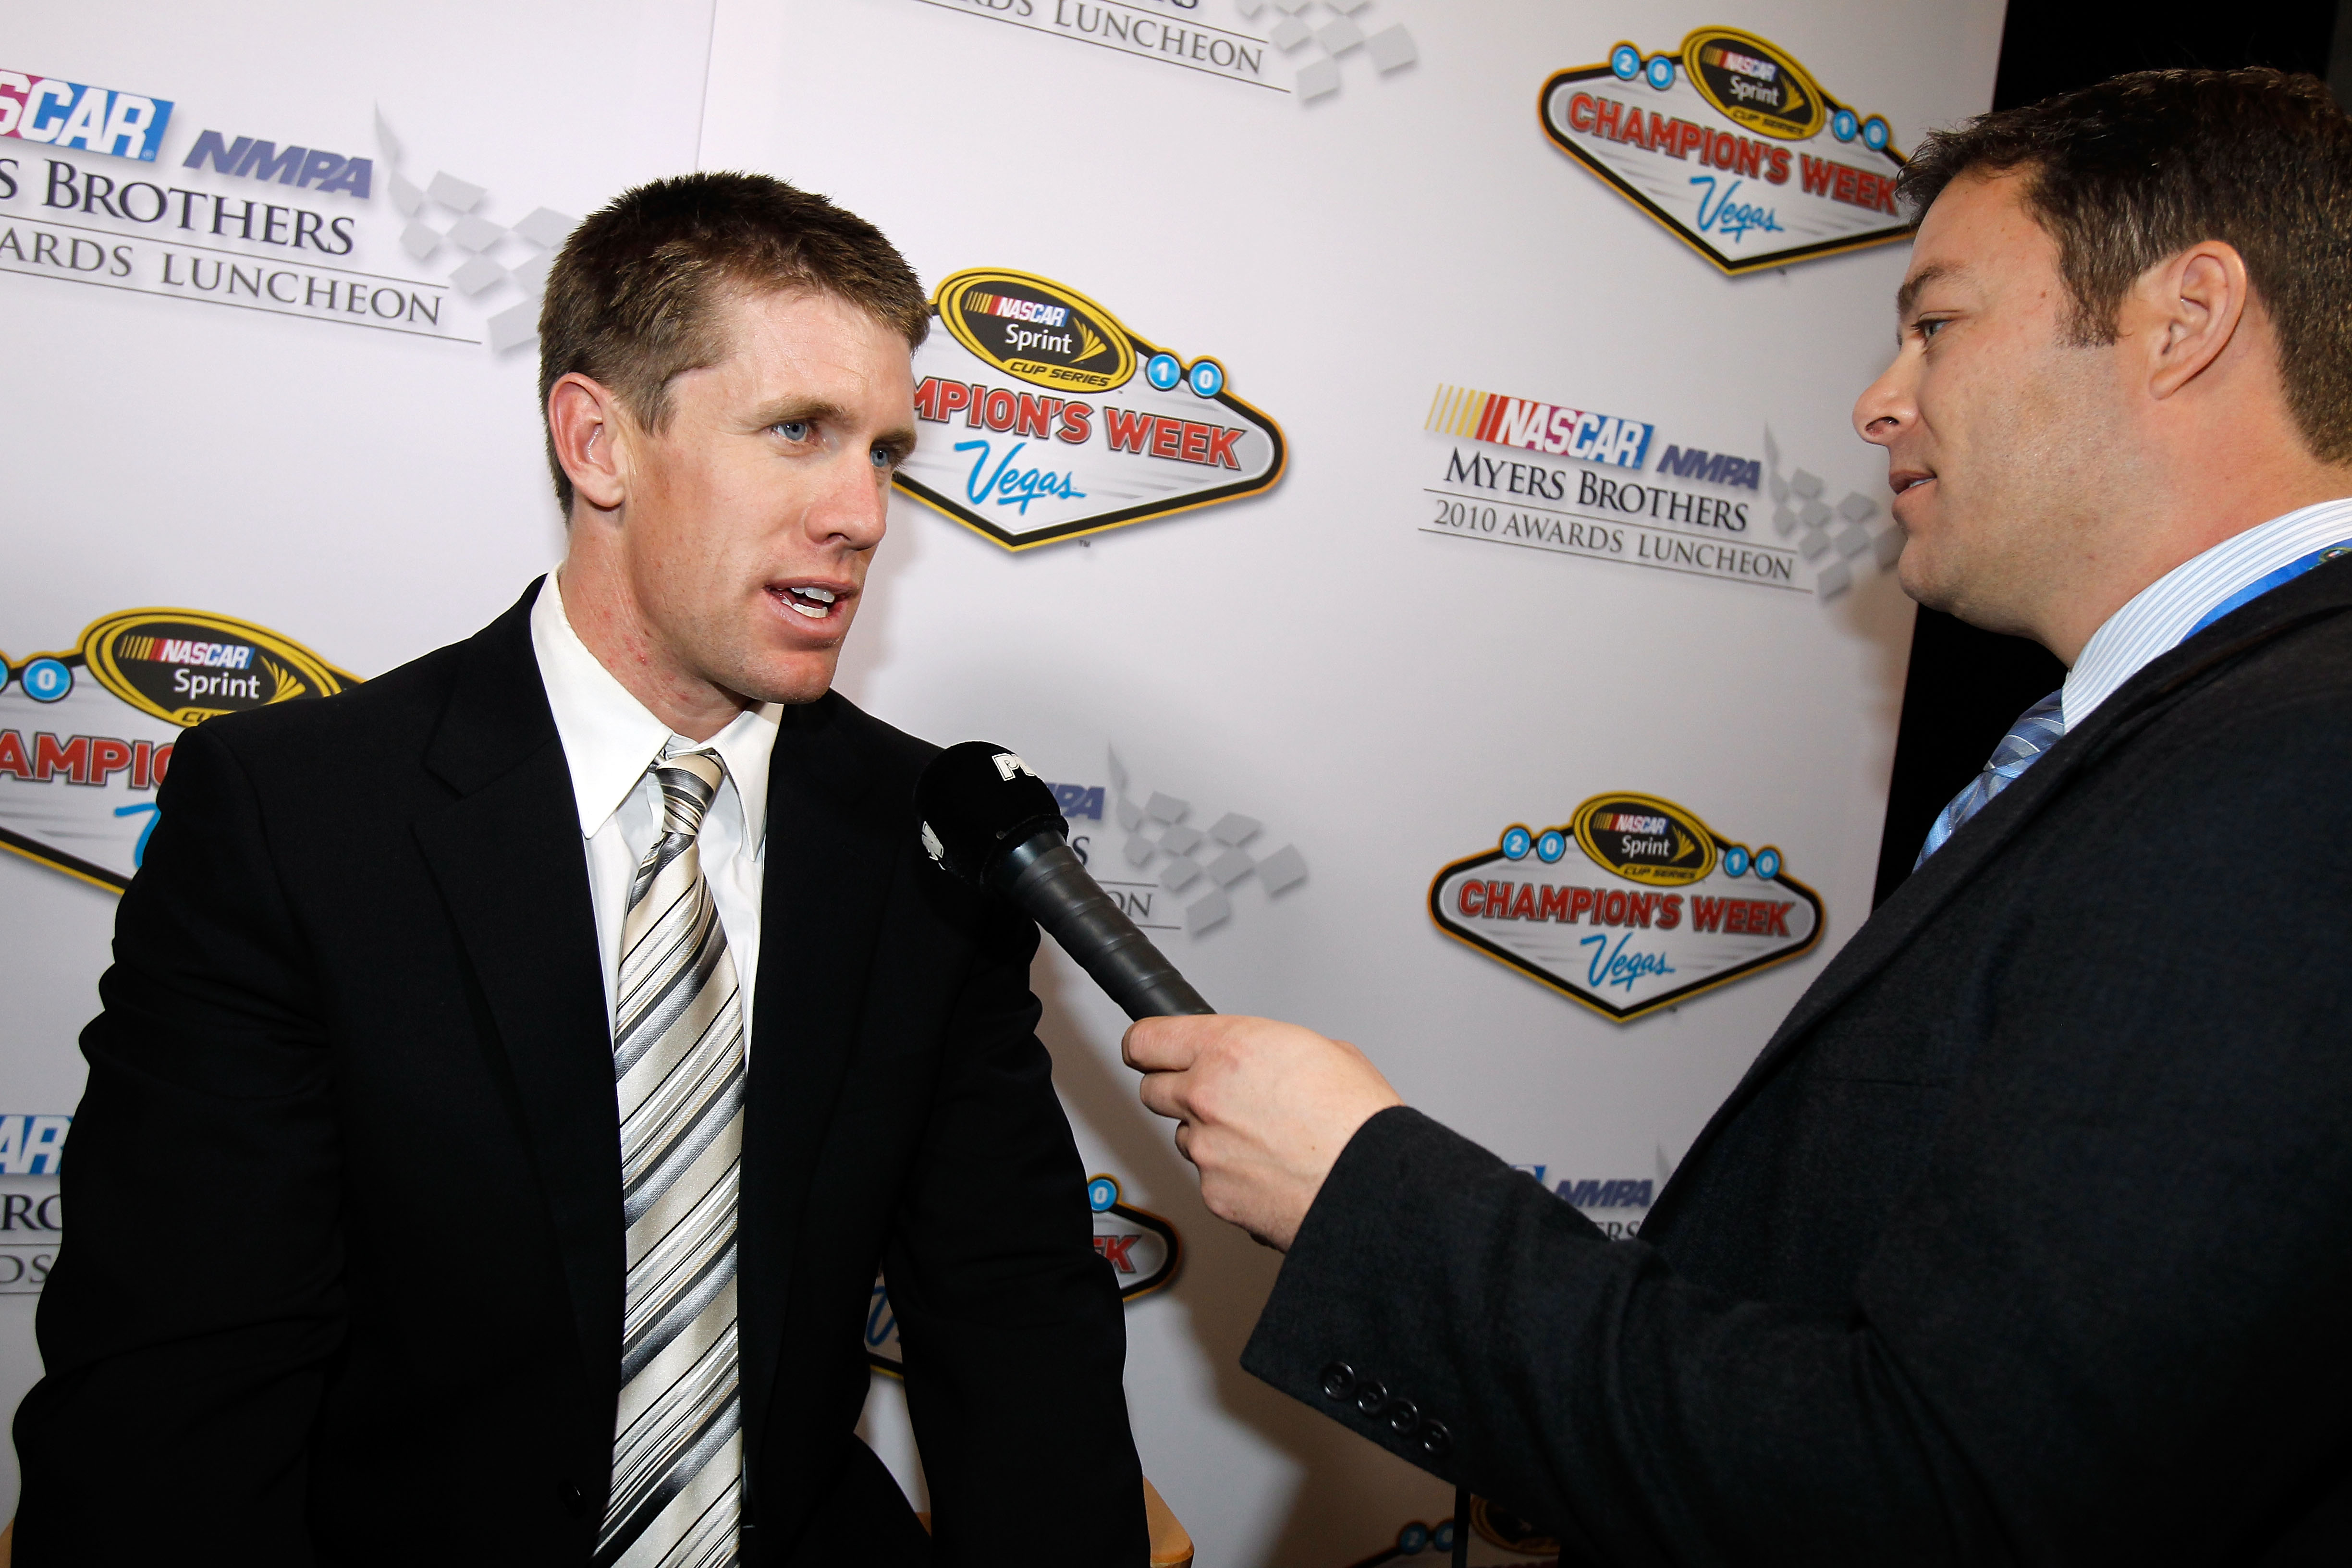 The crowd chanted for Carl Edwards to take off his shirt after a question from a fan.